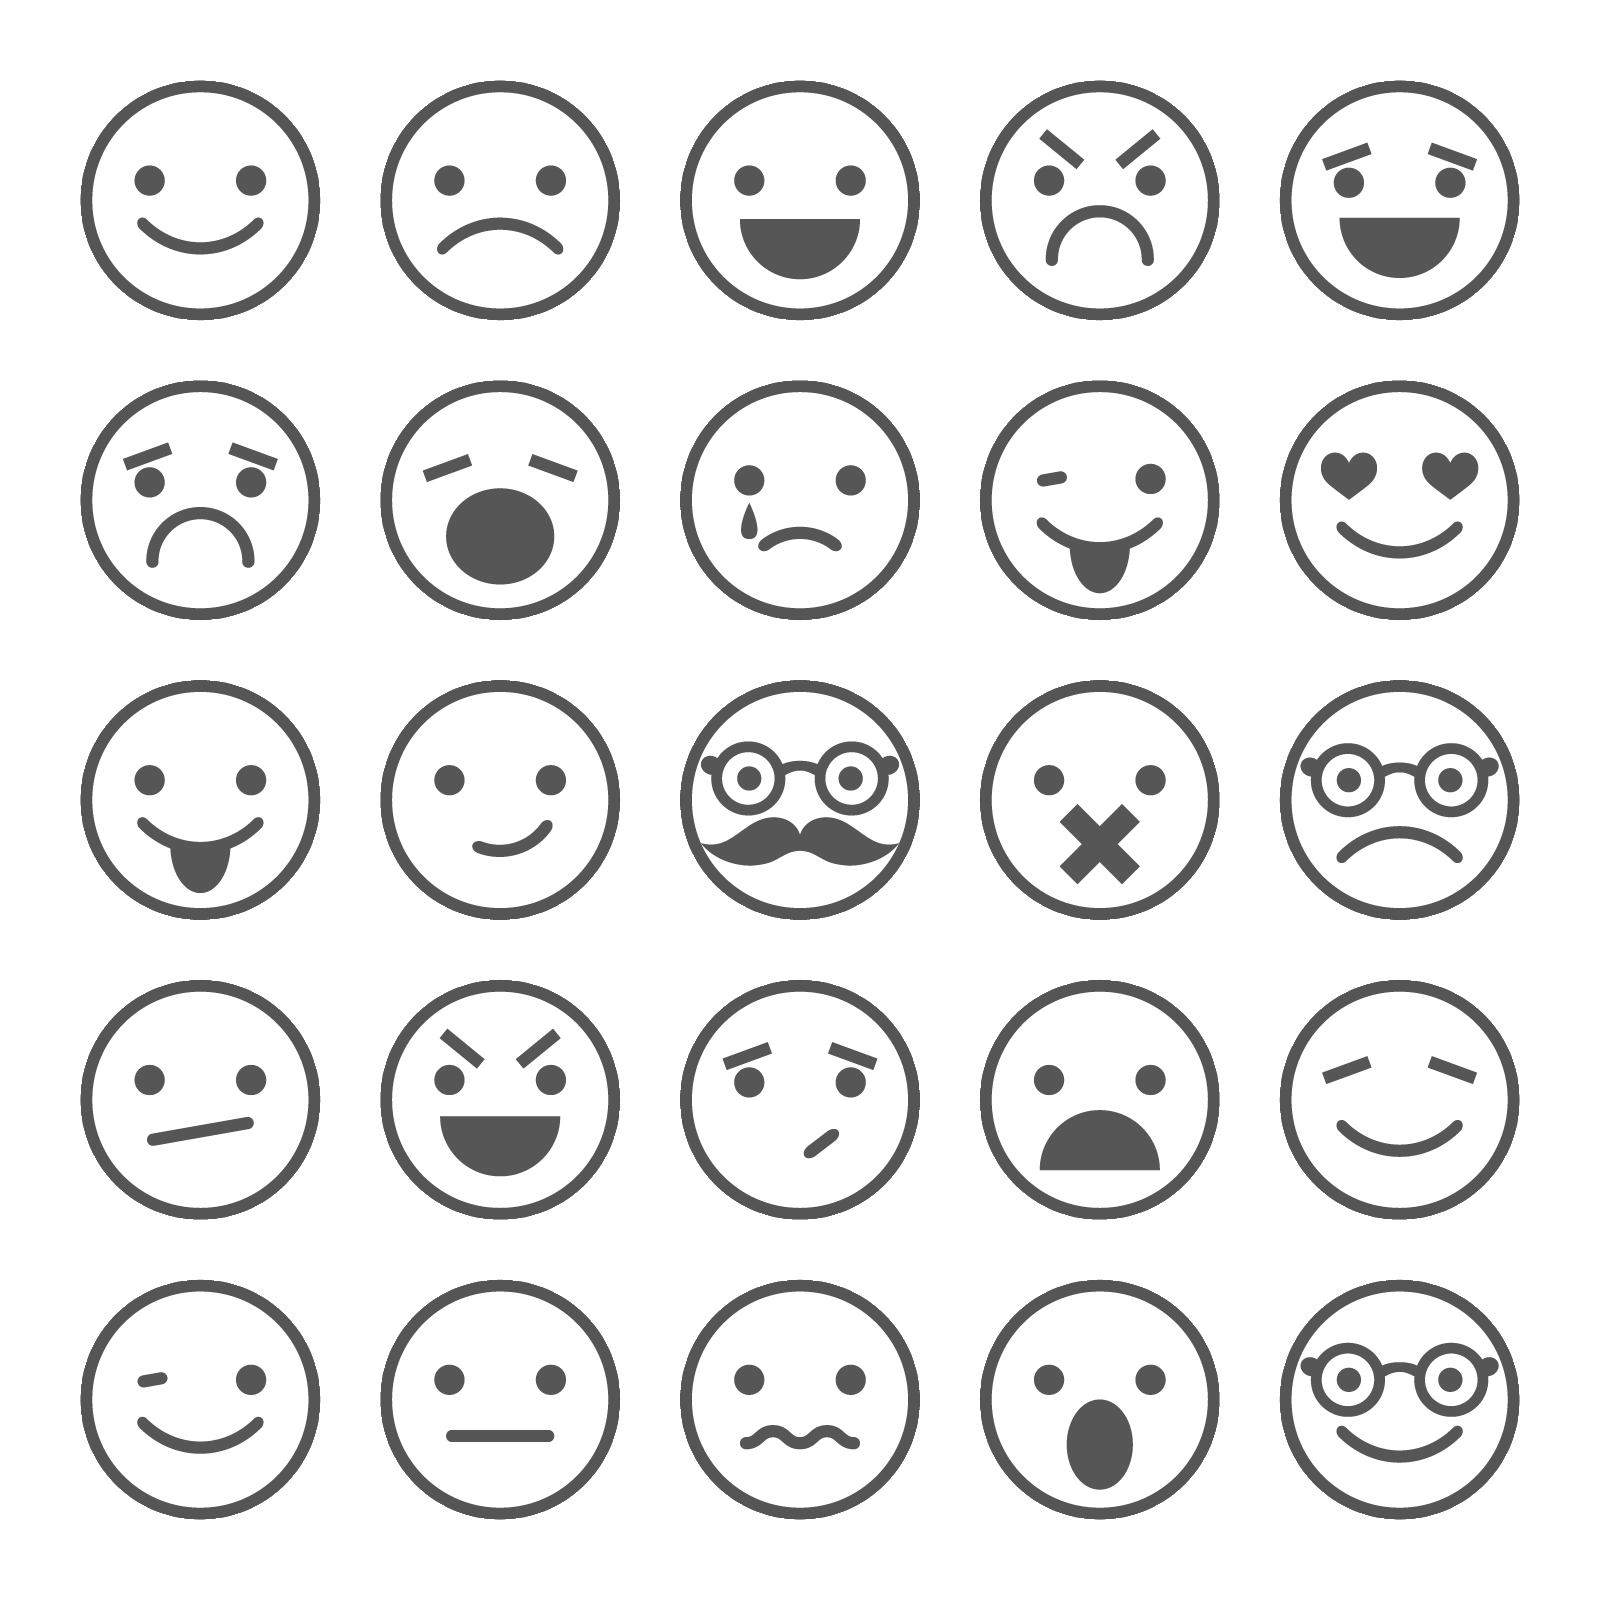 Free Emotions Clipart Black And White, Download Free Clip.